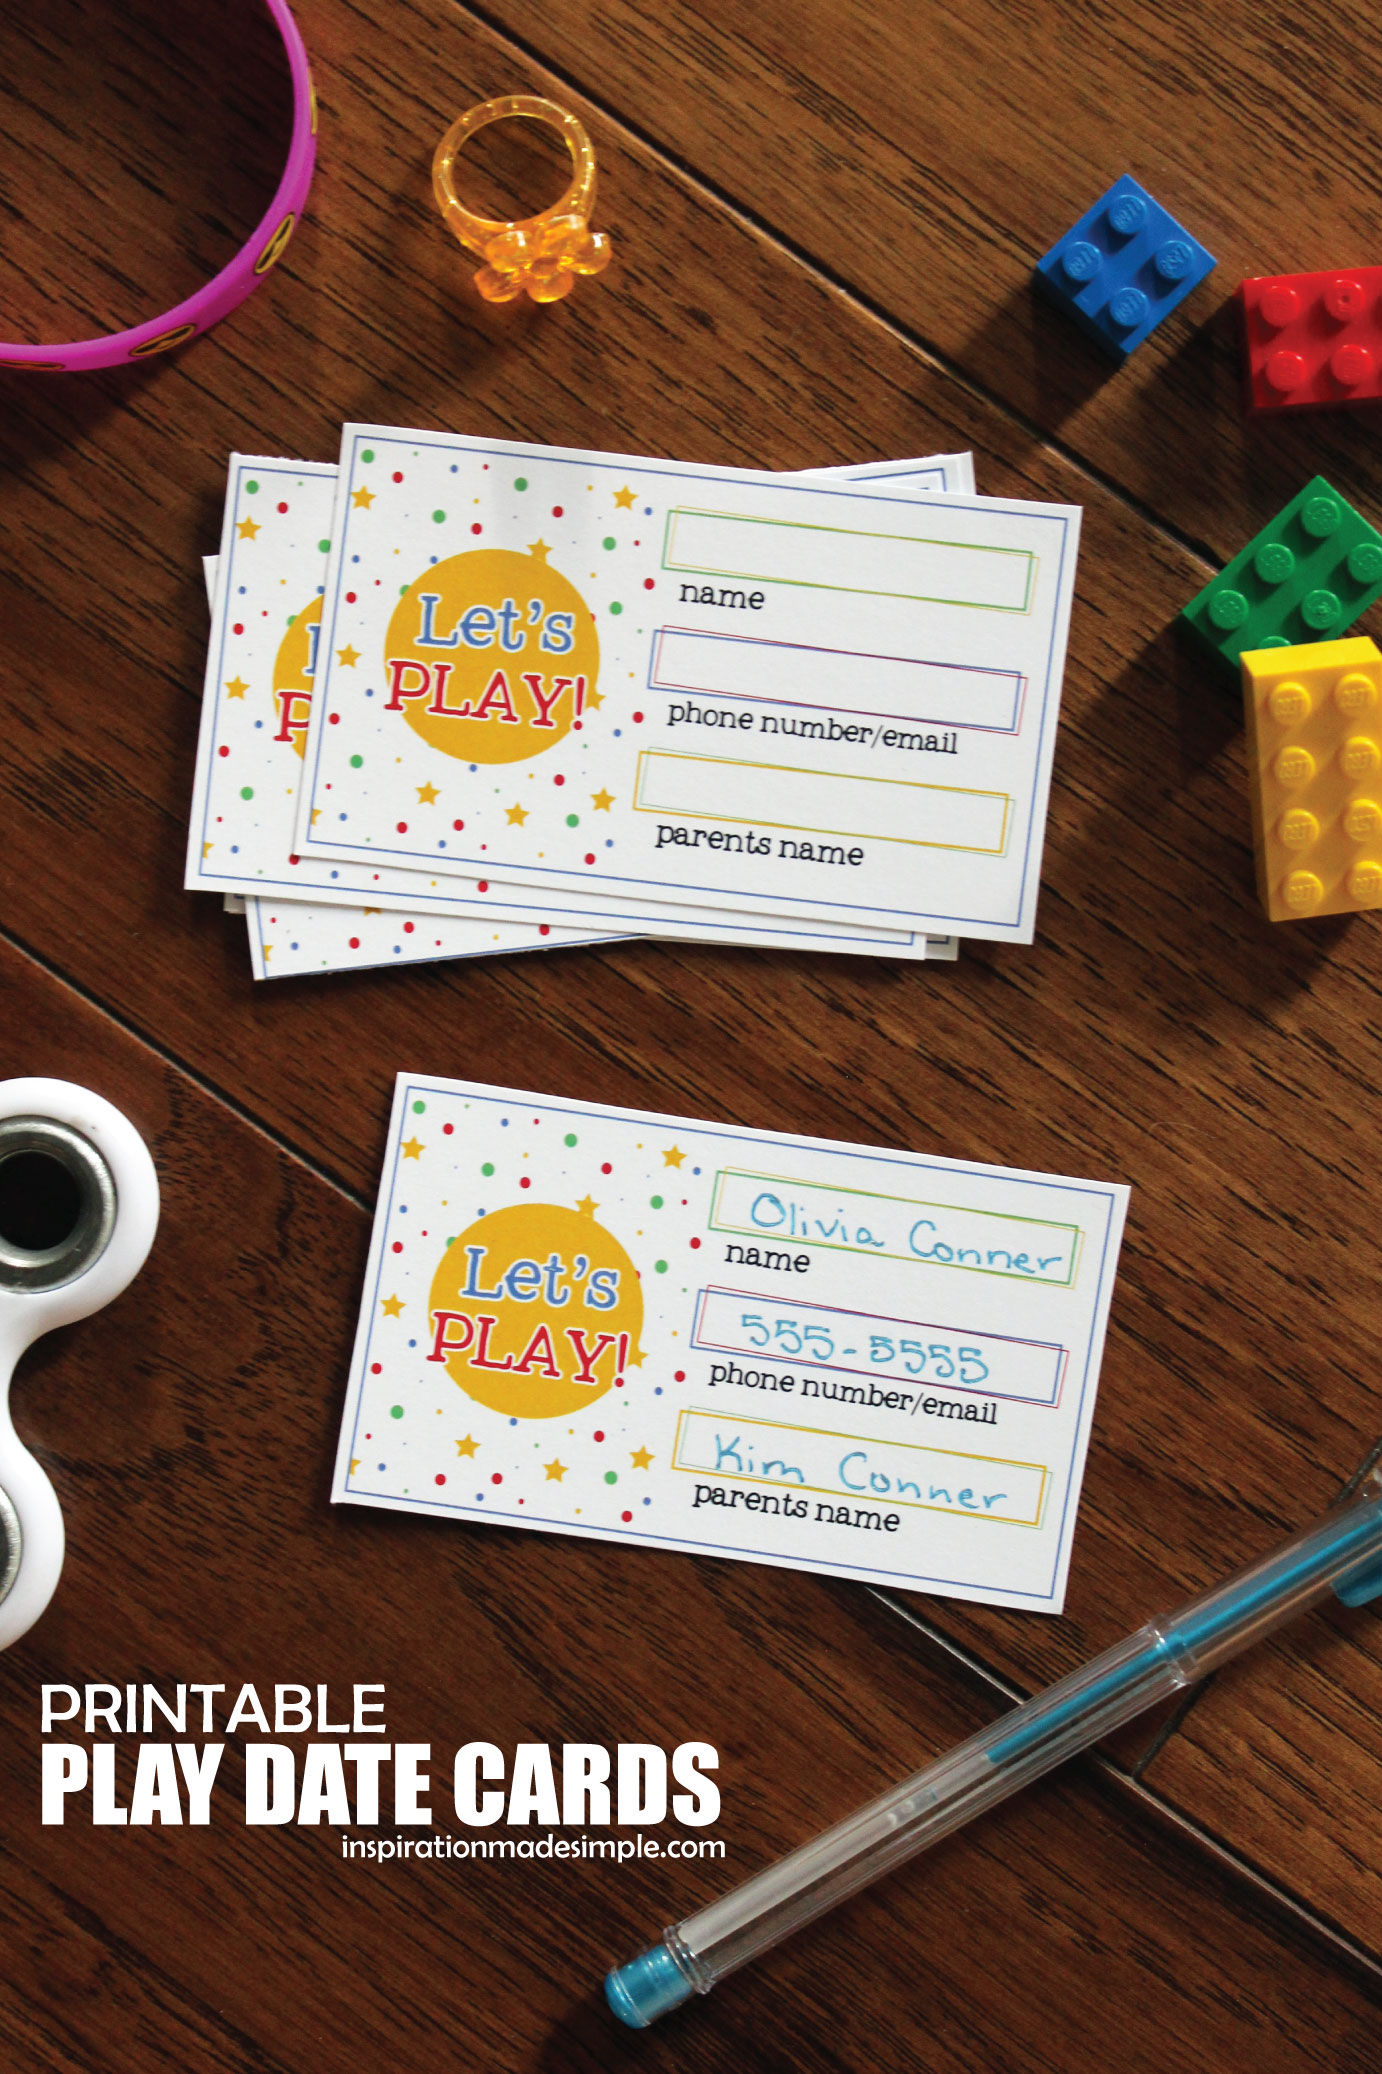 Printable Play Date Cards for Kids